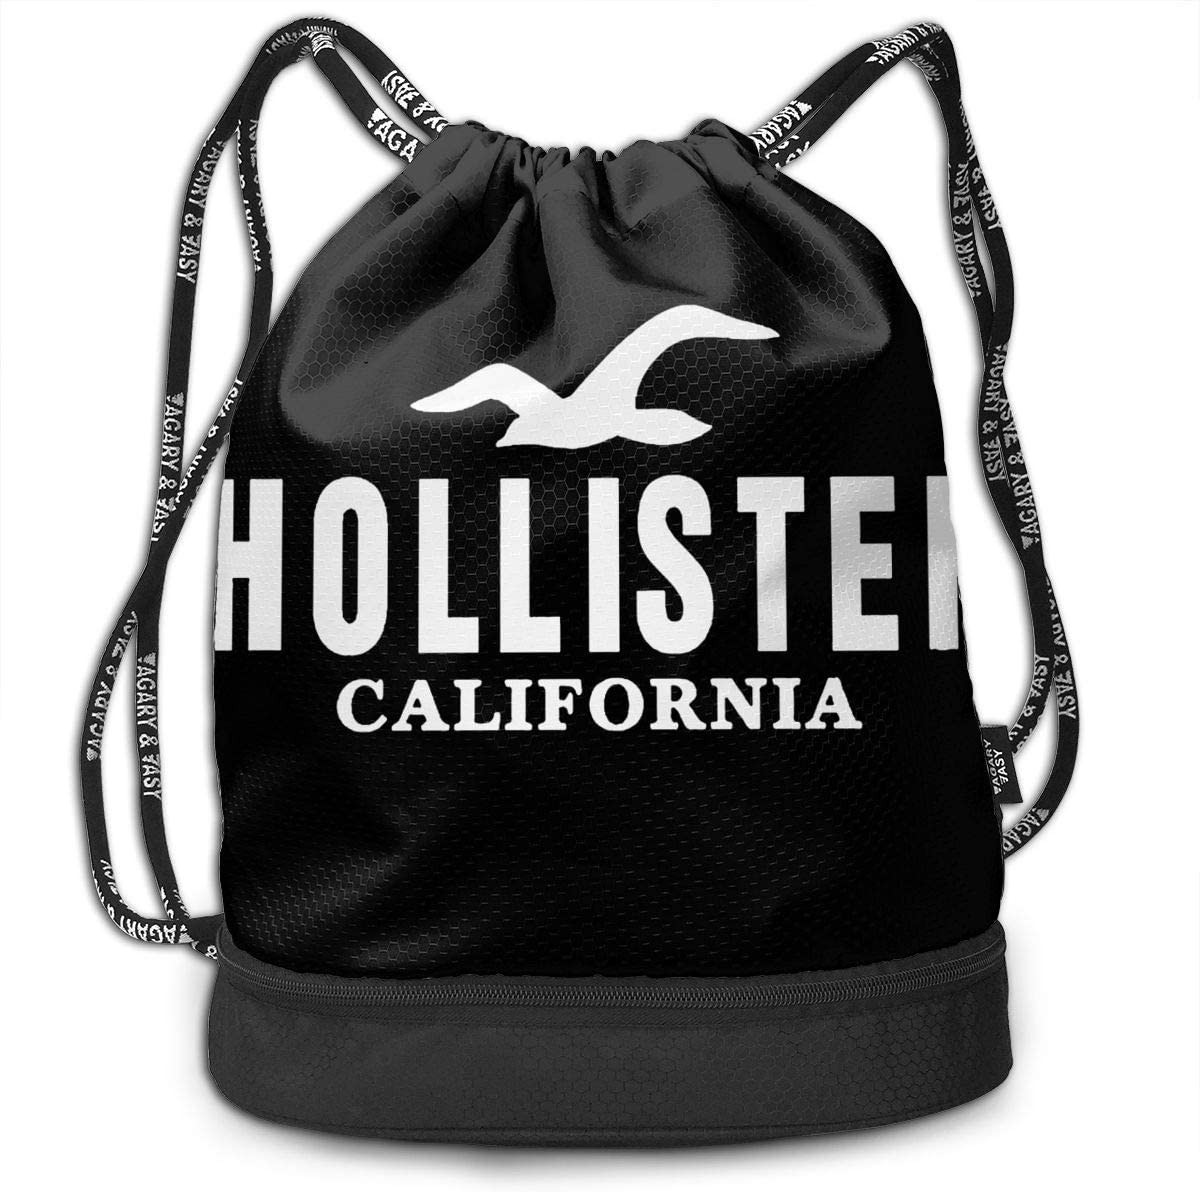 Travel Suitable for Sports Black Drawstring Cinch Bag Gym Tote Bag for Women Beach